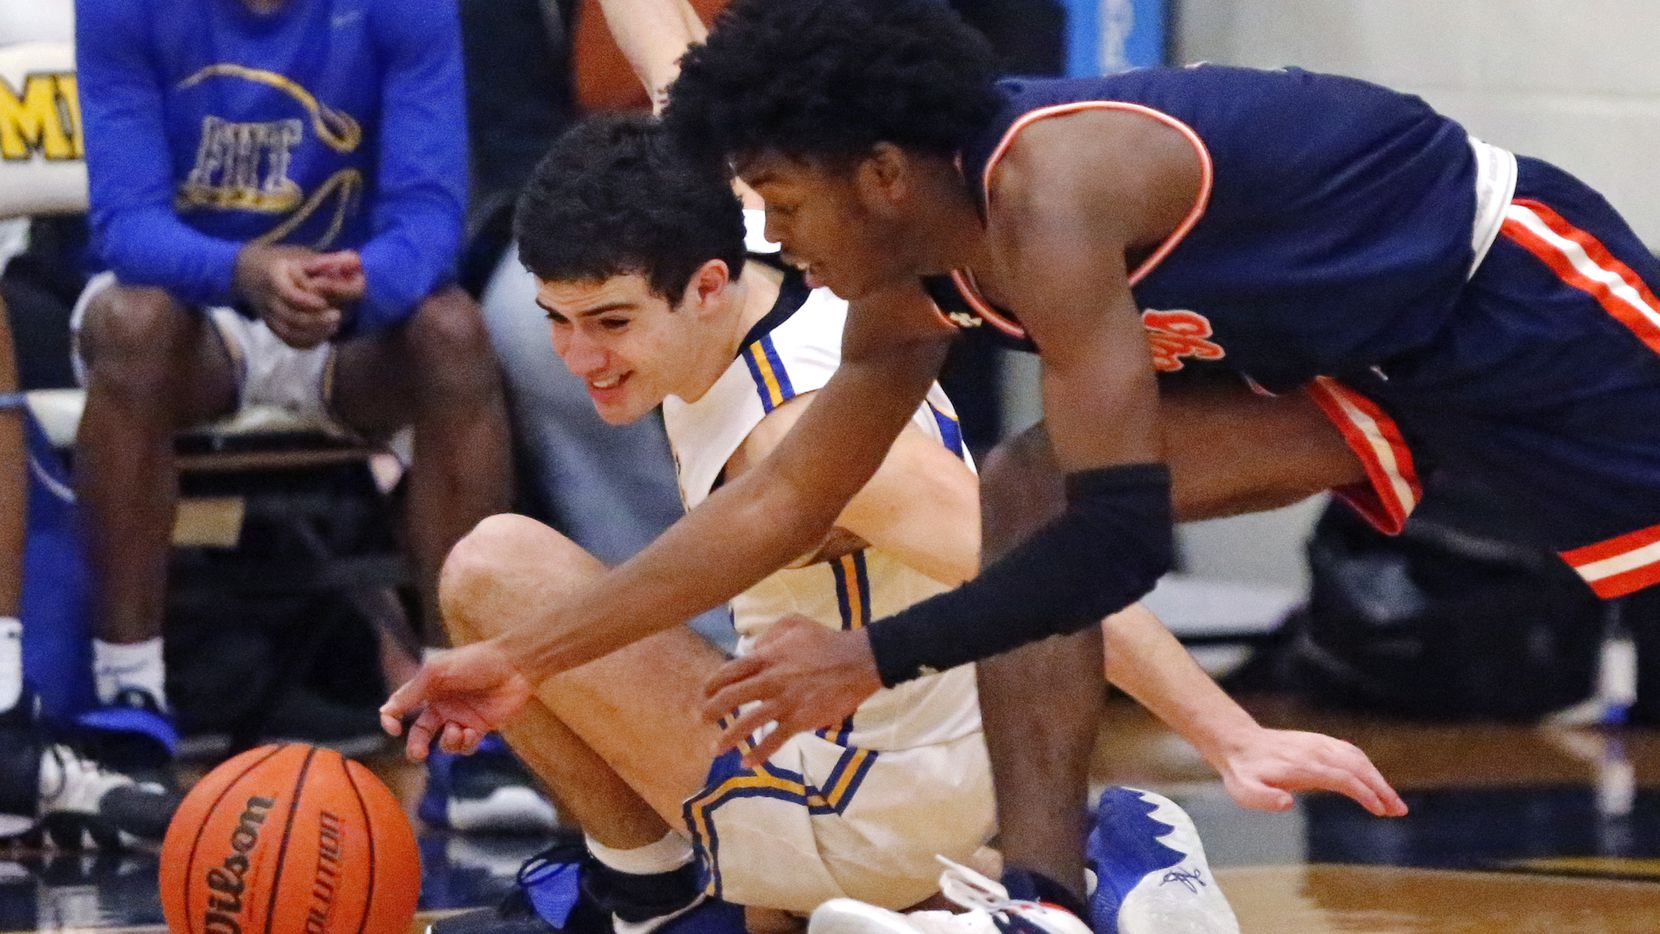 Frisco's Daniel Meneses has the ball stolen by McKinney North's J.J. Henry (right) during the second half of McKinney North's 52-44 bi-district playoff win Monday. (Stewart F. House/Special Contributor)